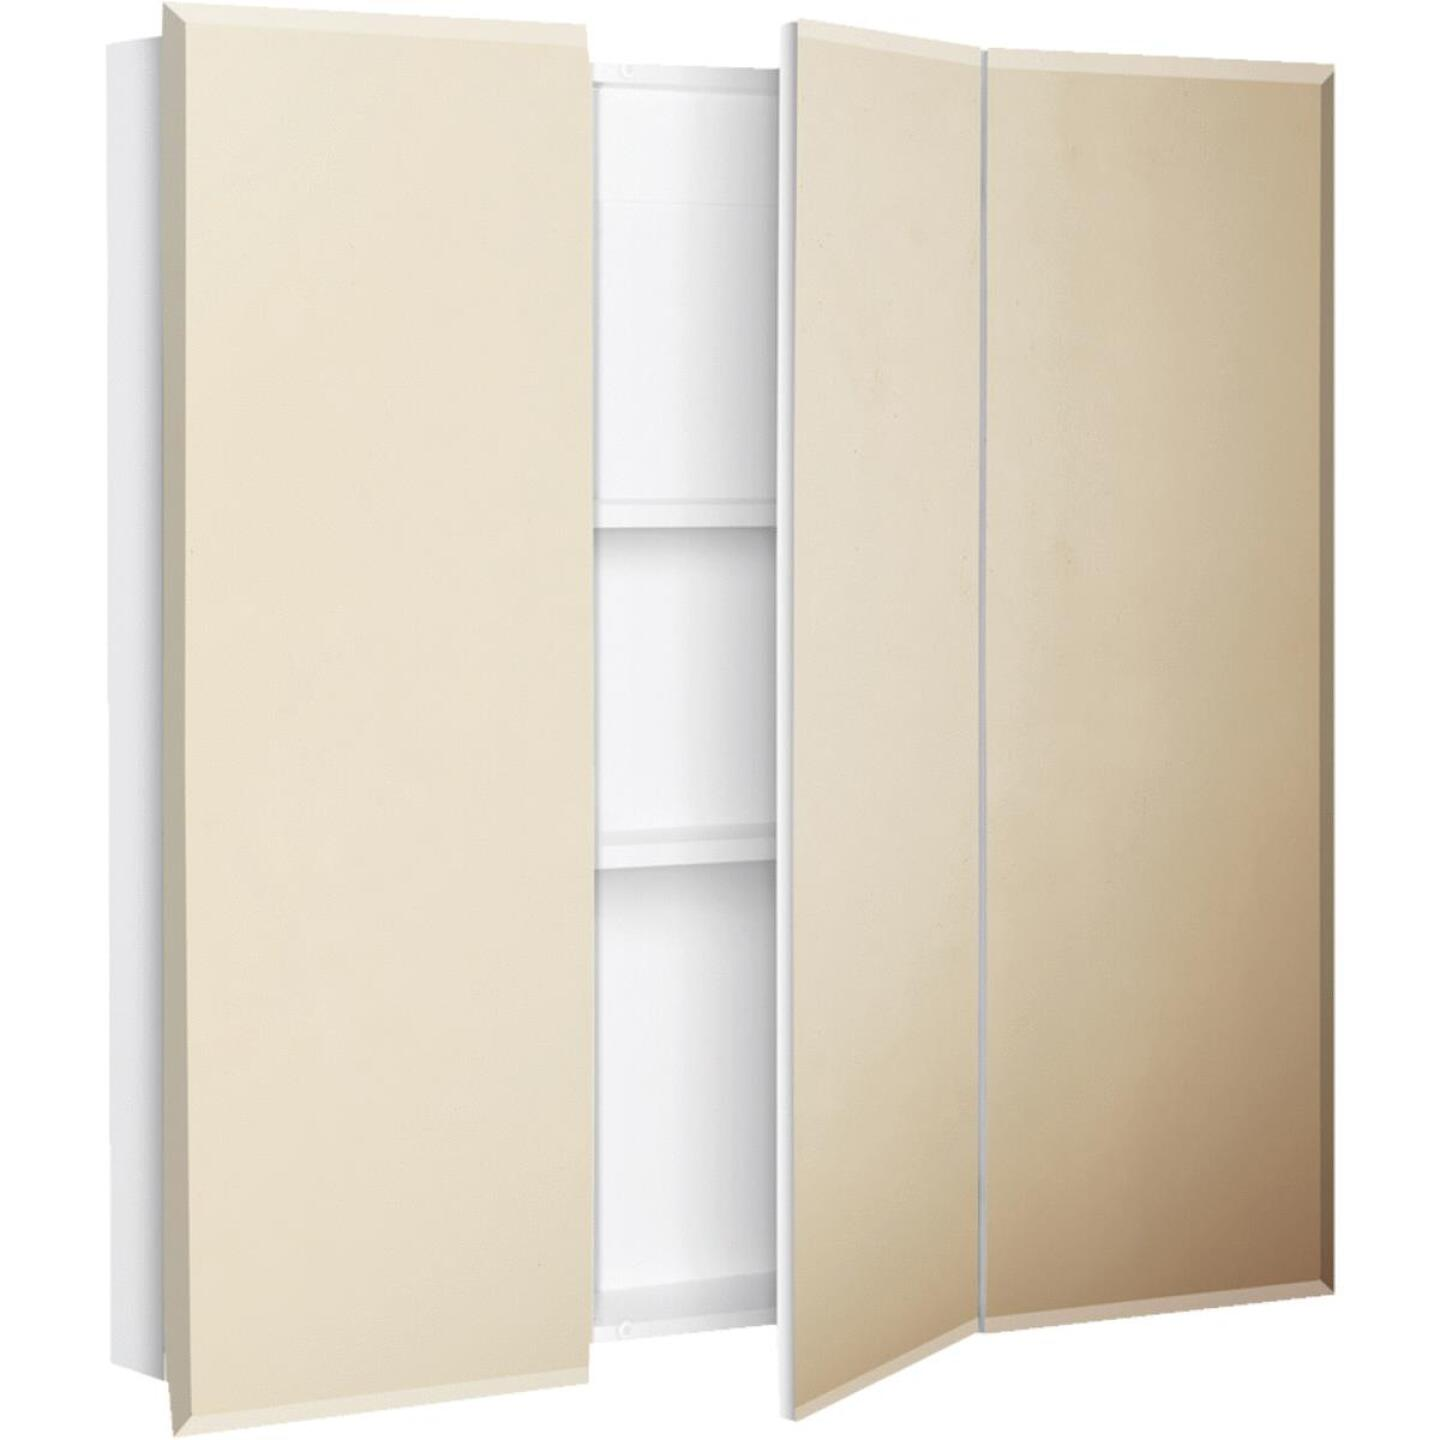 Continental Cabinets Frameless Beveled 30 In. W x 29-3/4 In. H x 4-1/4 In. D Tri-View Surface Mount Medicine Cabinet Image 2